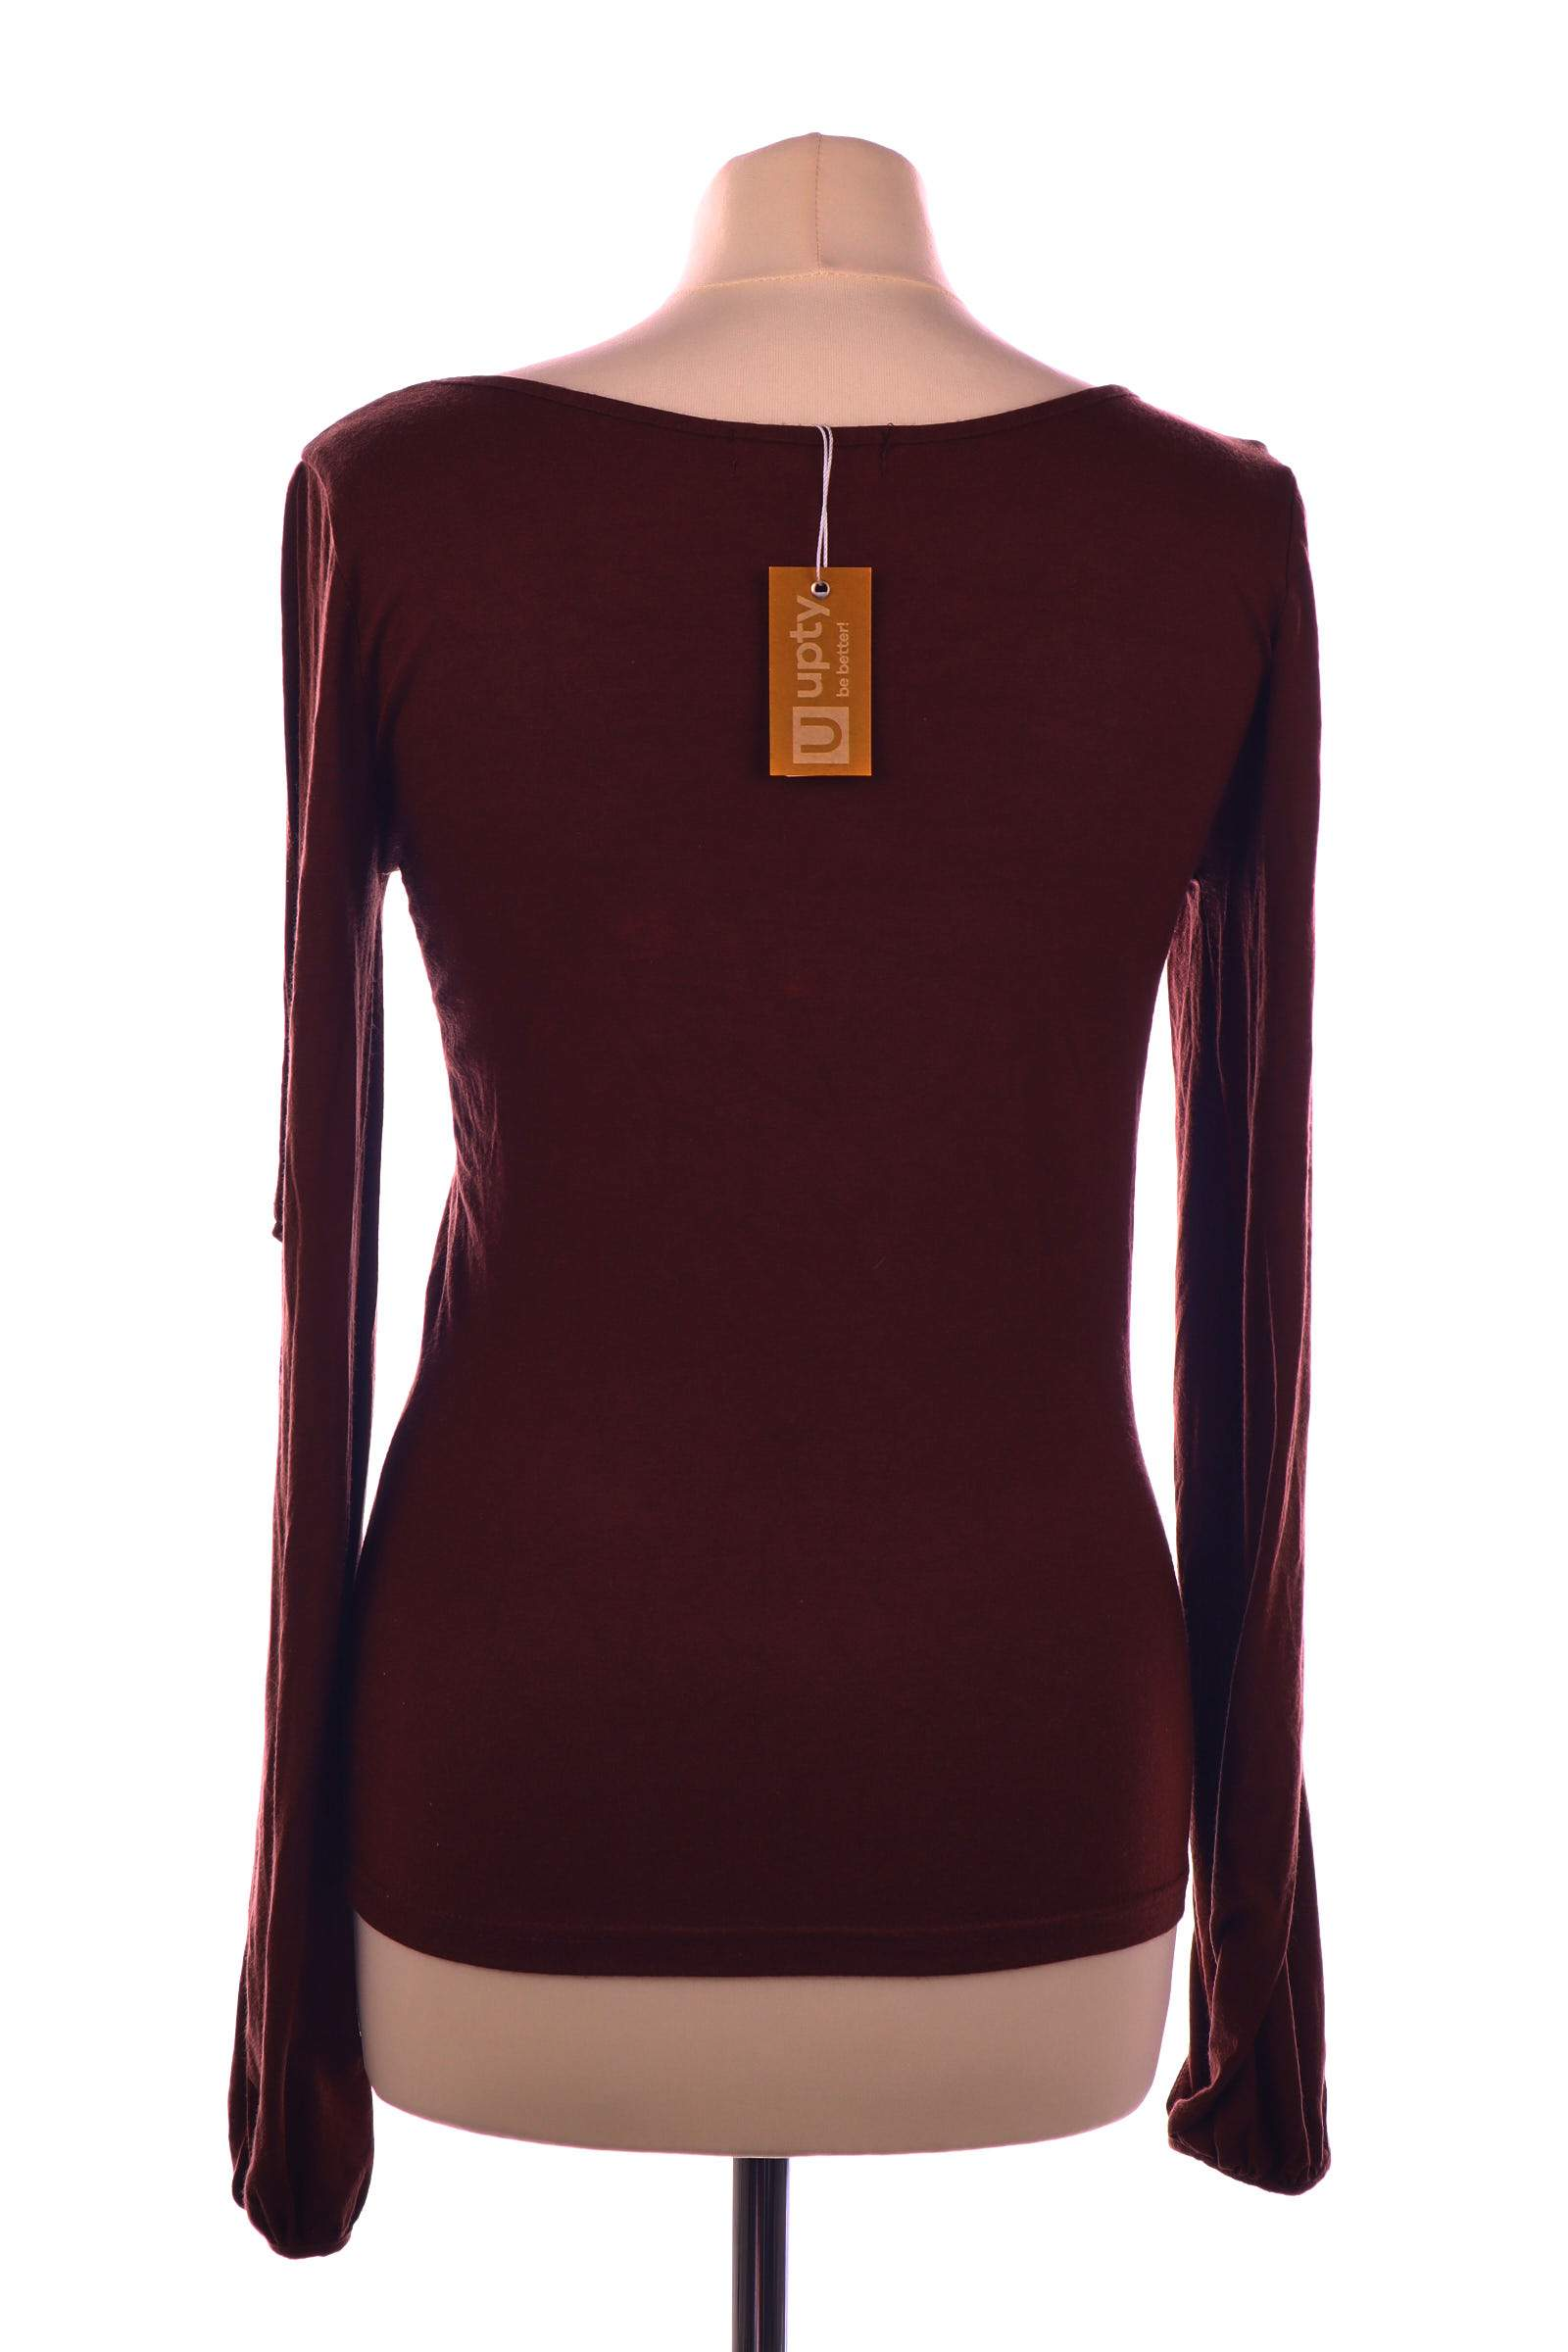 Vero Moda Brown Top